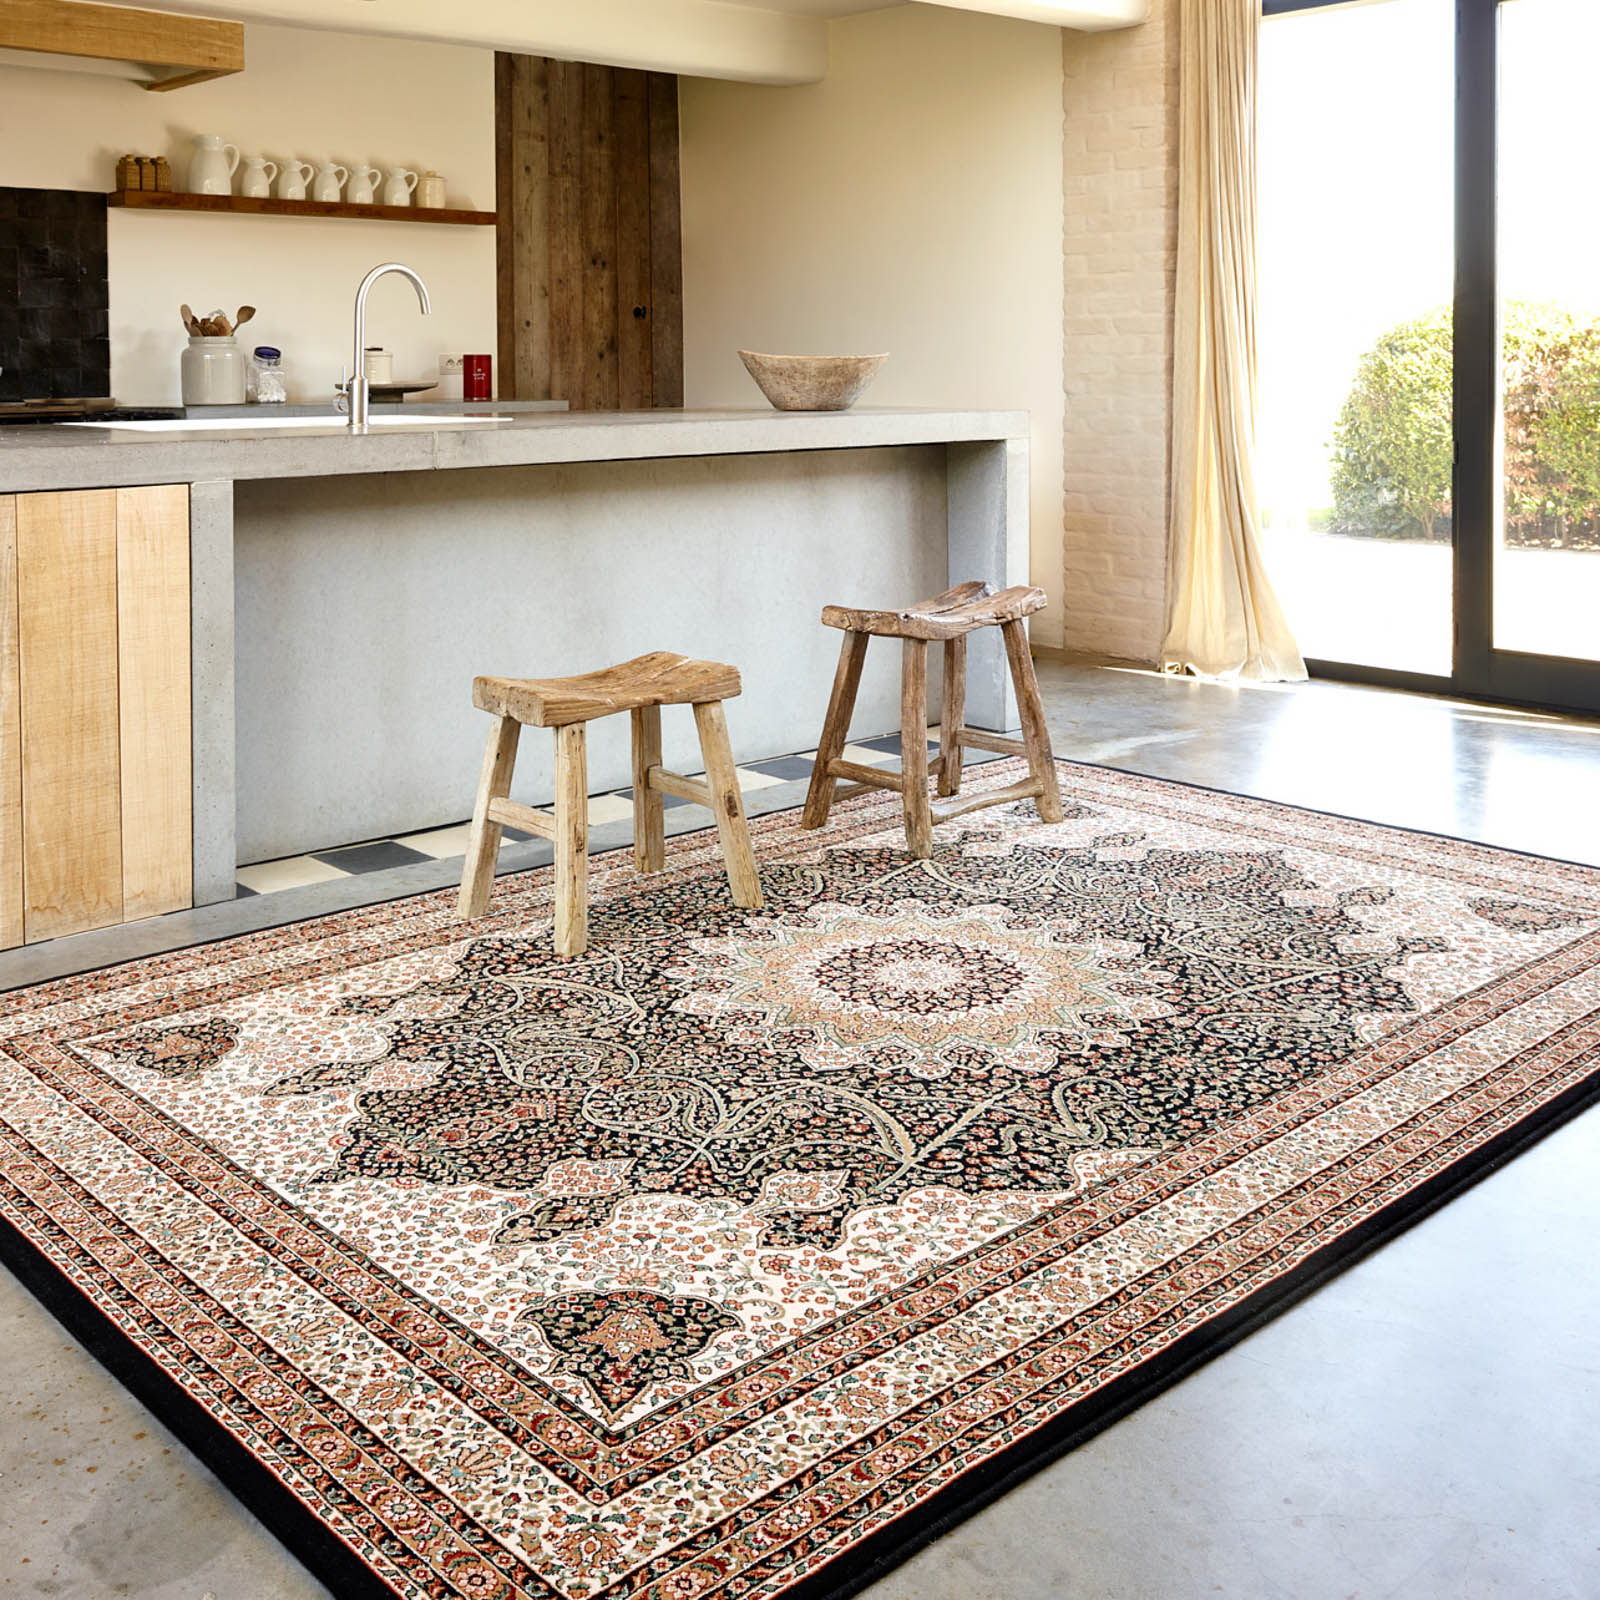 Nain Rugs 1285 678 in Navy by Lano